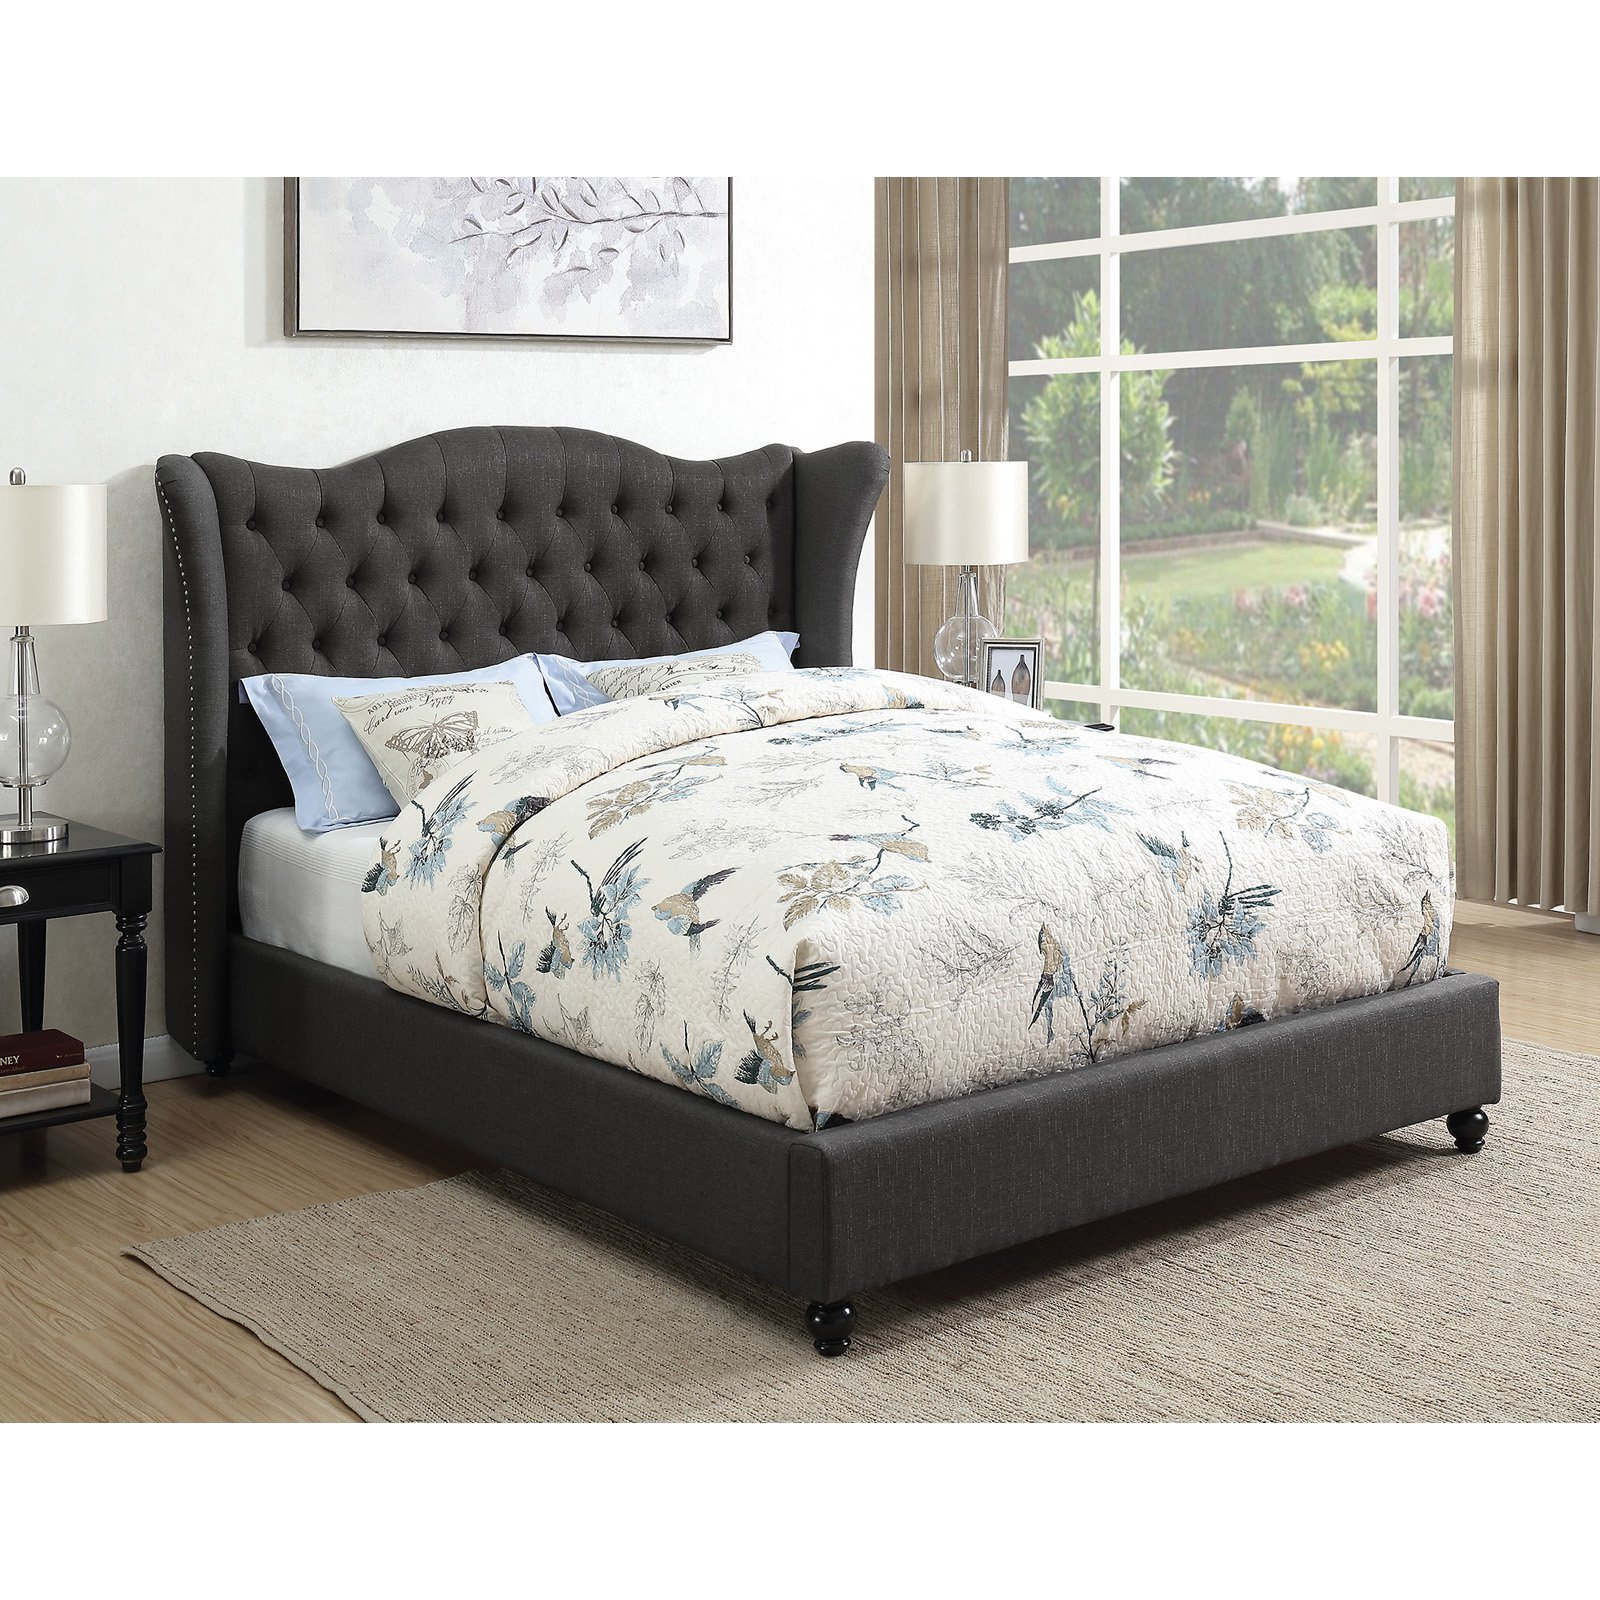 Coaster Furniture Newburgh Upholstered Wingback Panel Bed